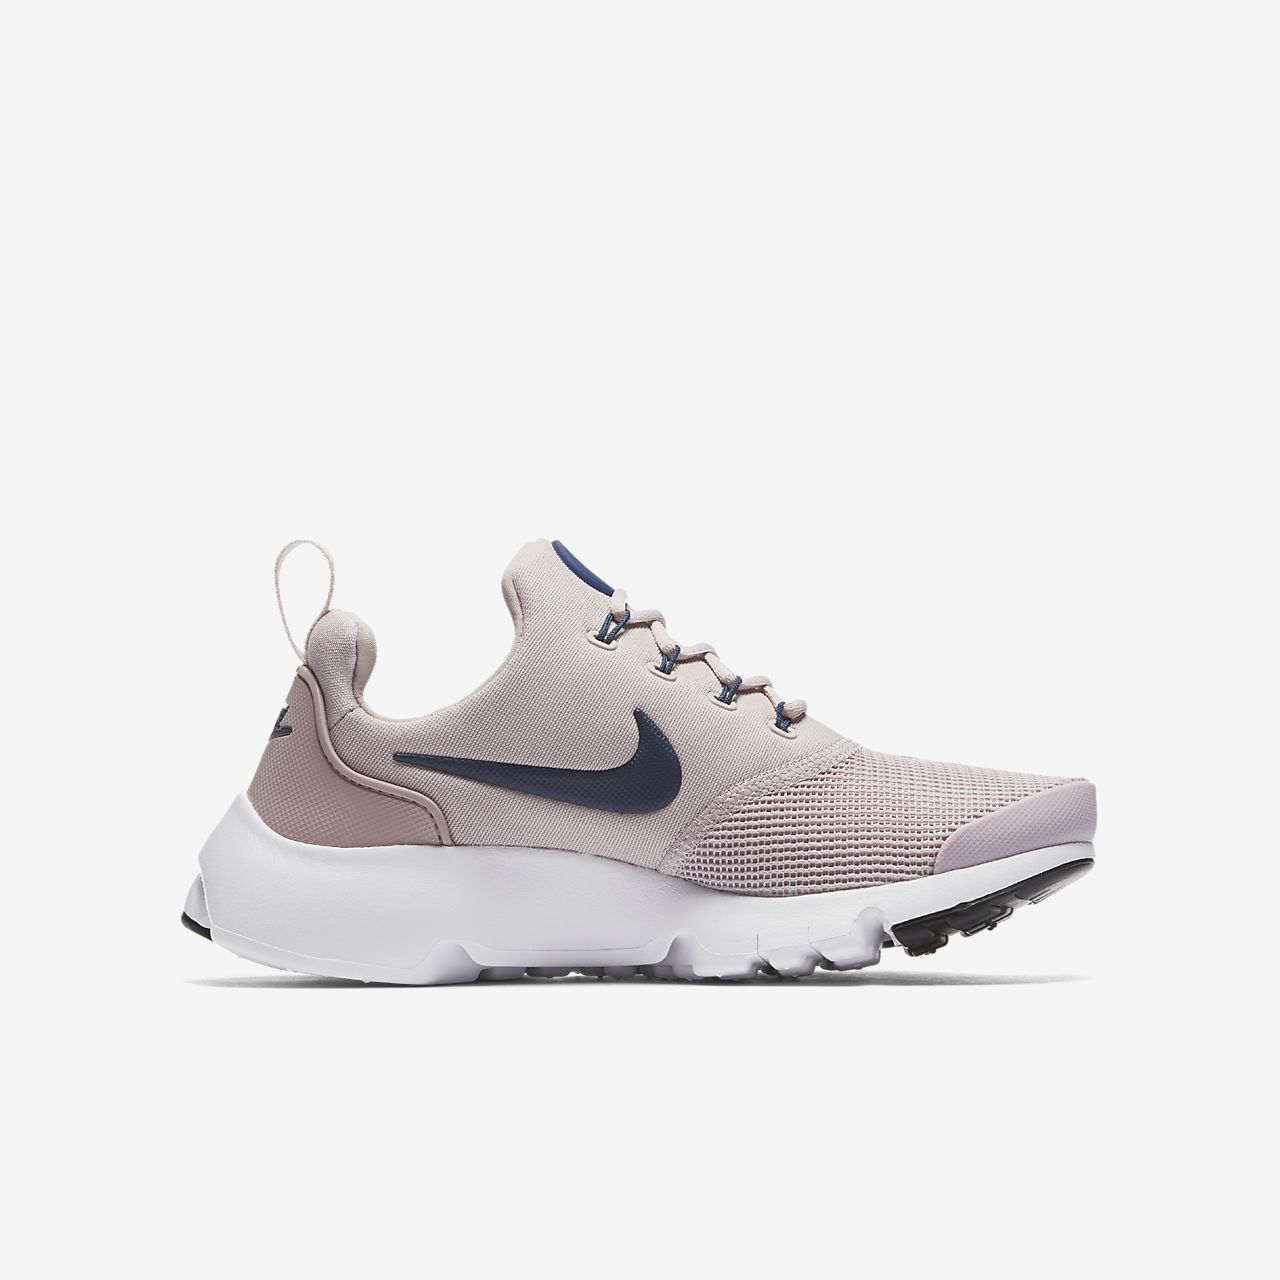 cheap for discount d02f7 cbf16 Basket Nike Air Presto Fly Junior - 913967-602